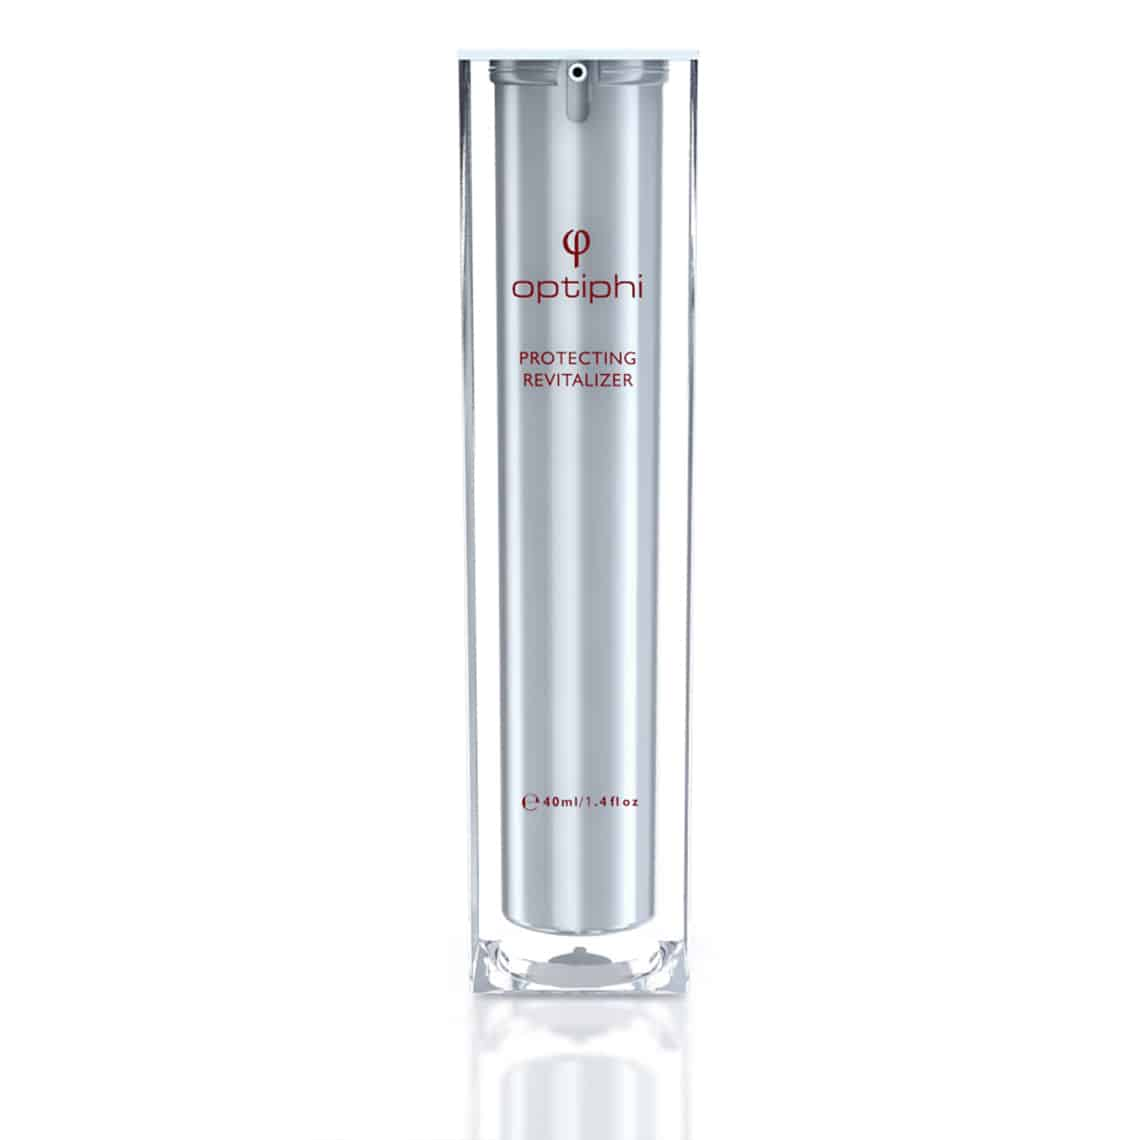 Optiphi Protecting Revitalizer